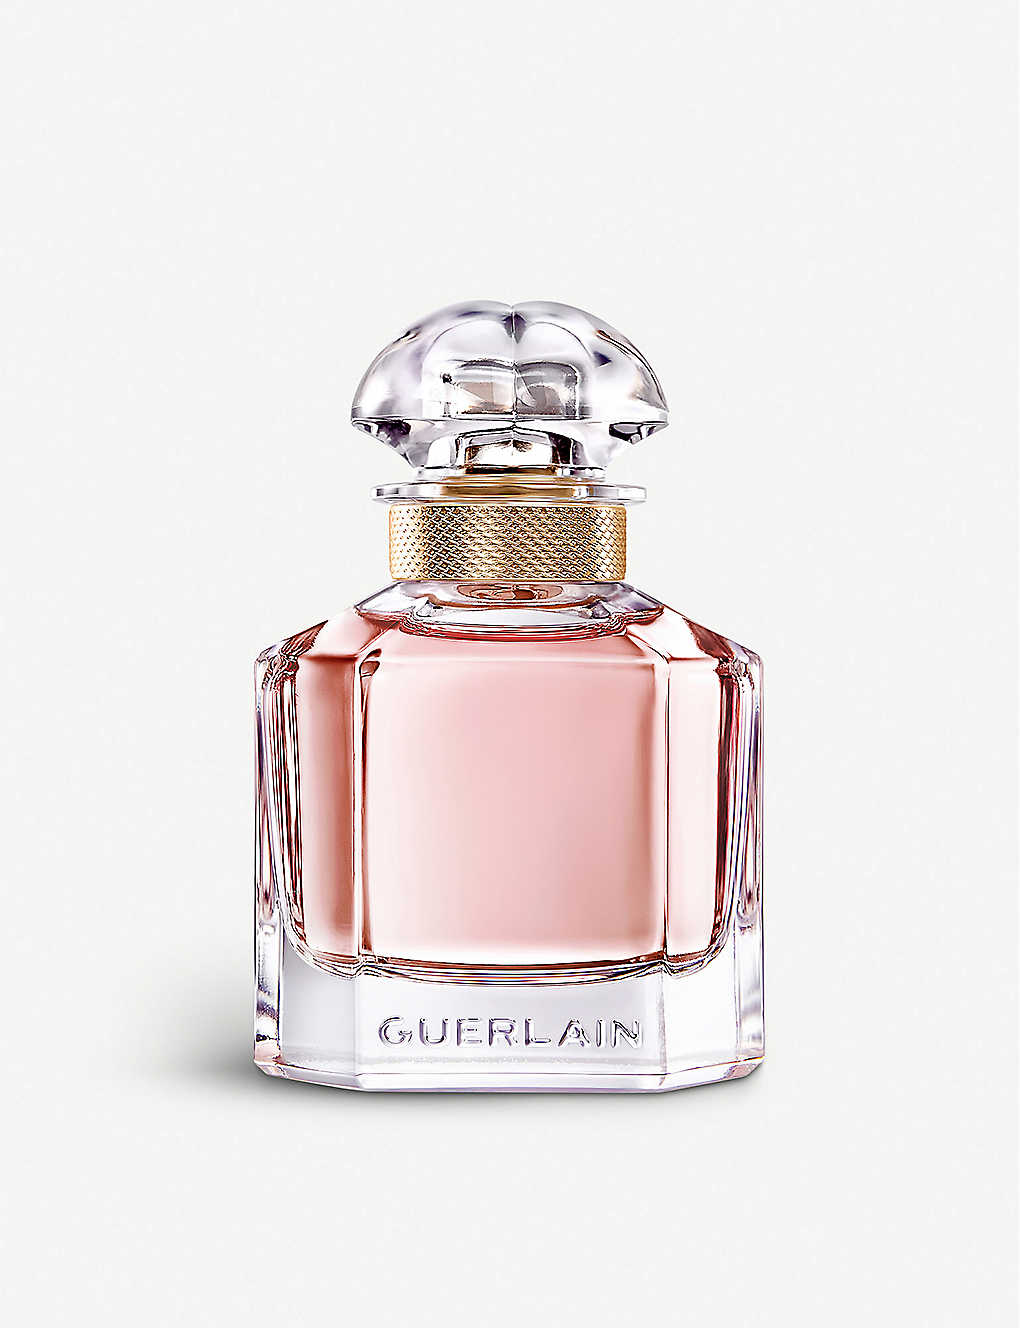 guerlain perfume price in pakistan